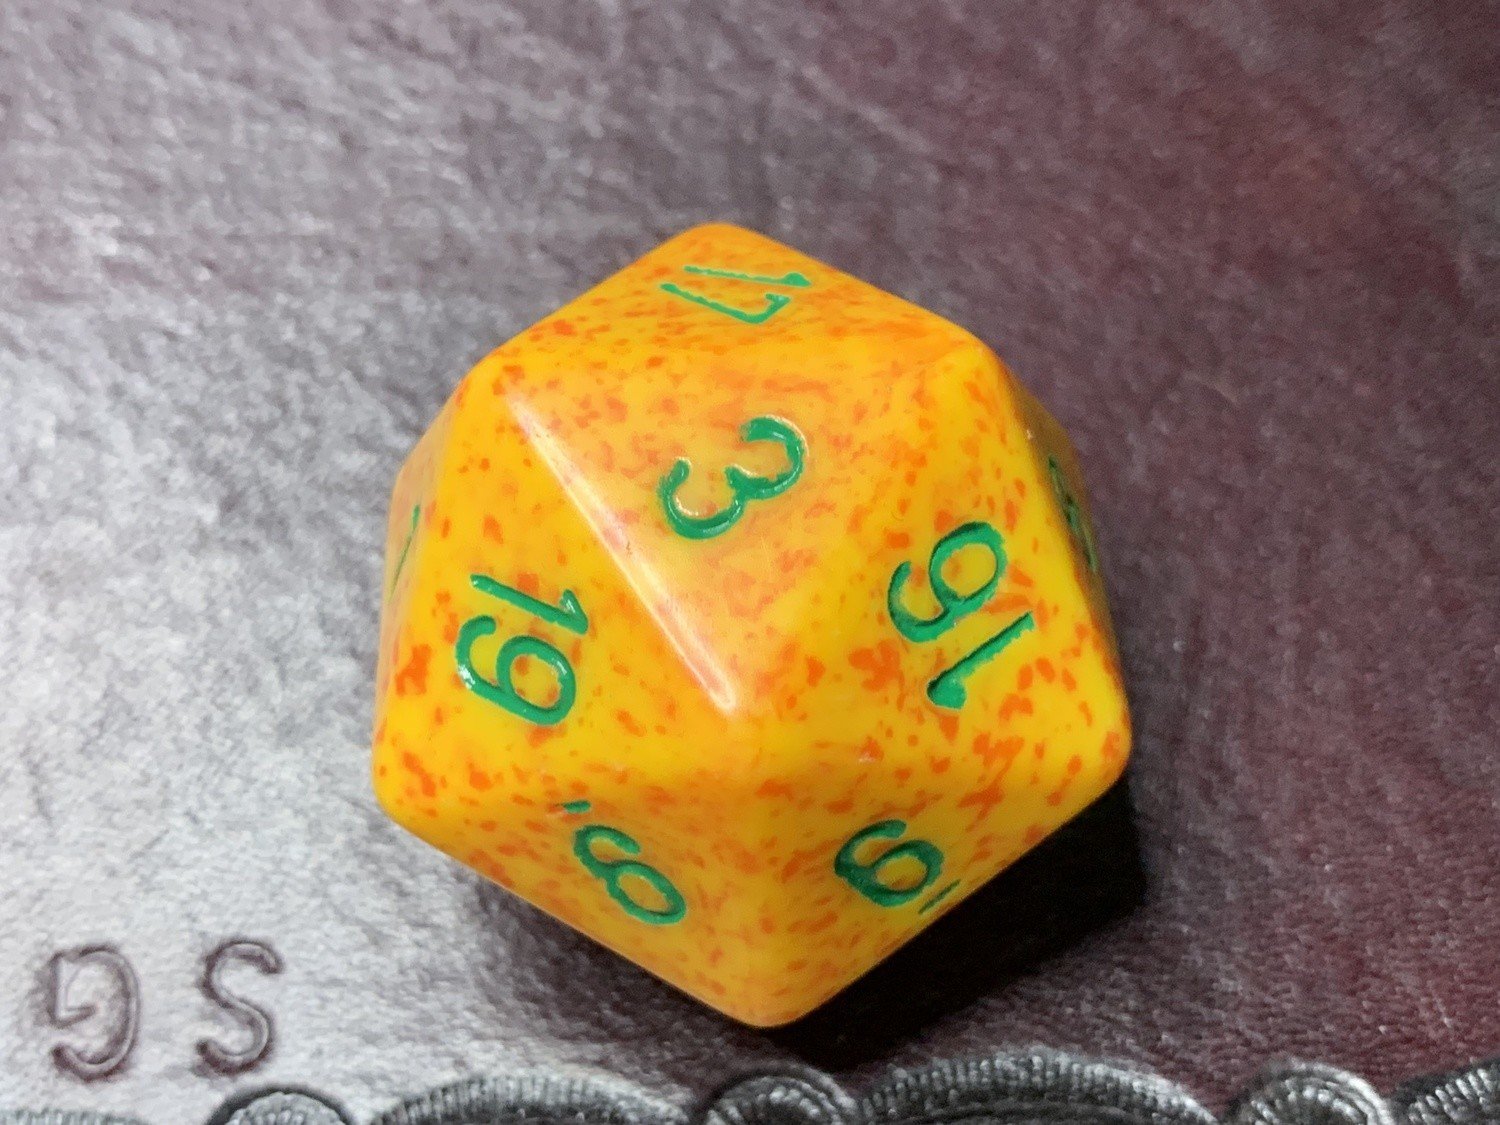 Jumbo 34mm Speckled D20 Orange & Yellow with Green Extra Large Counter Dice